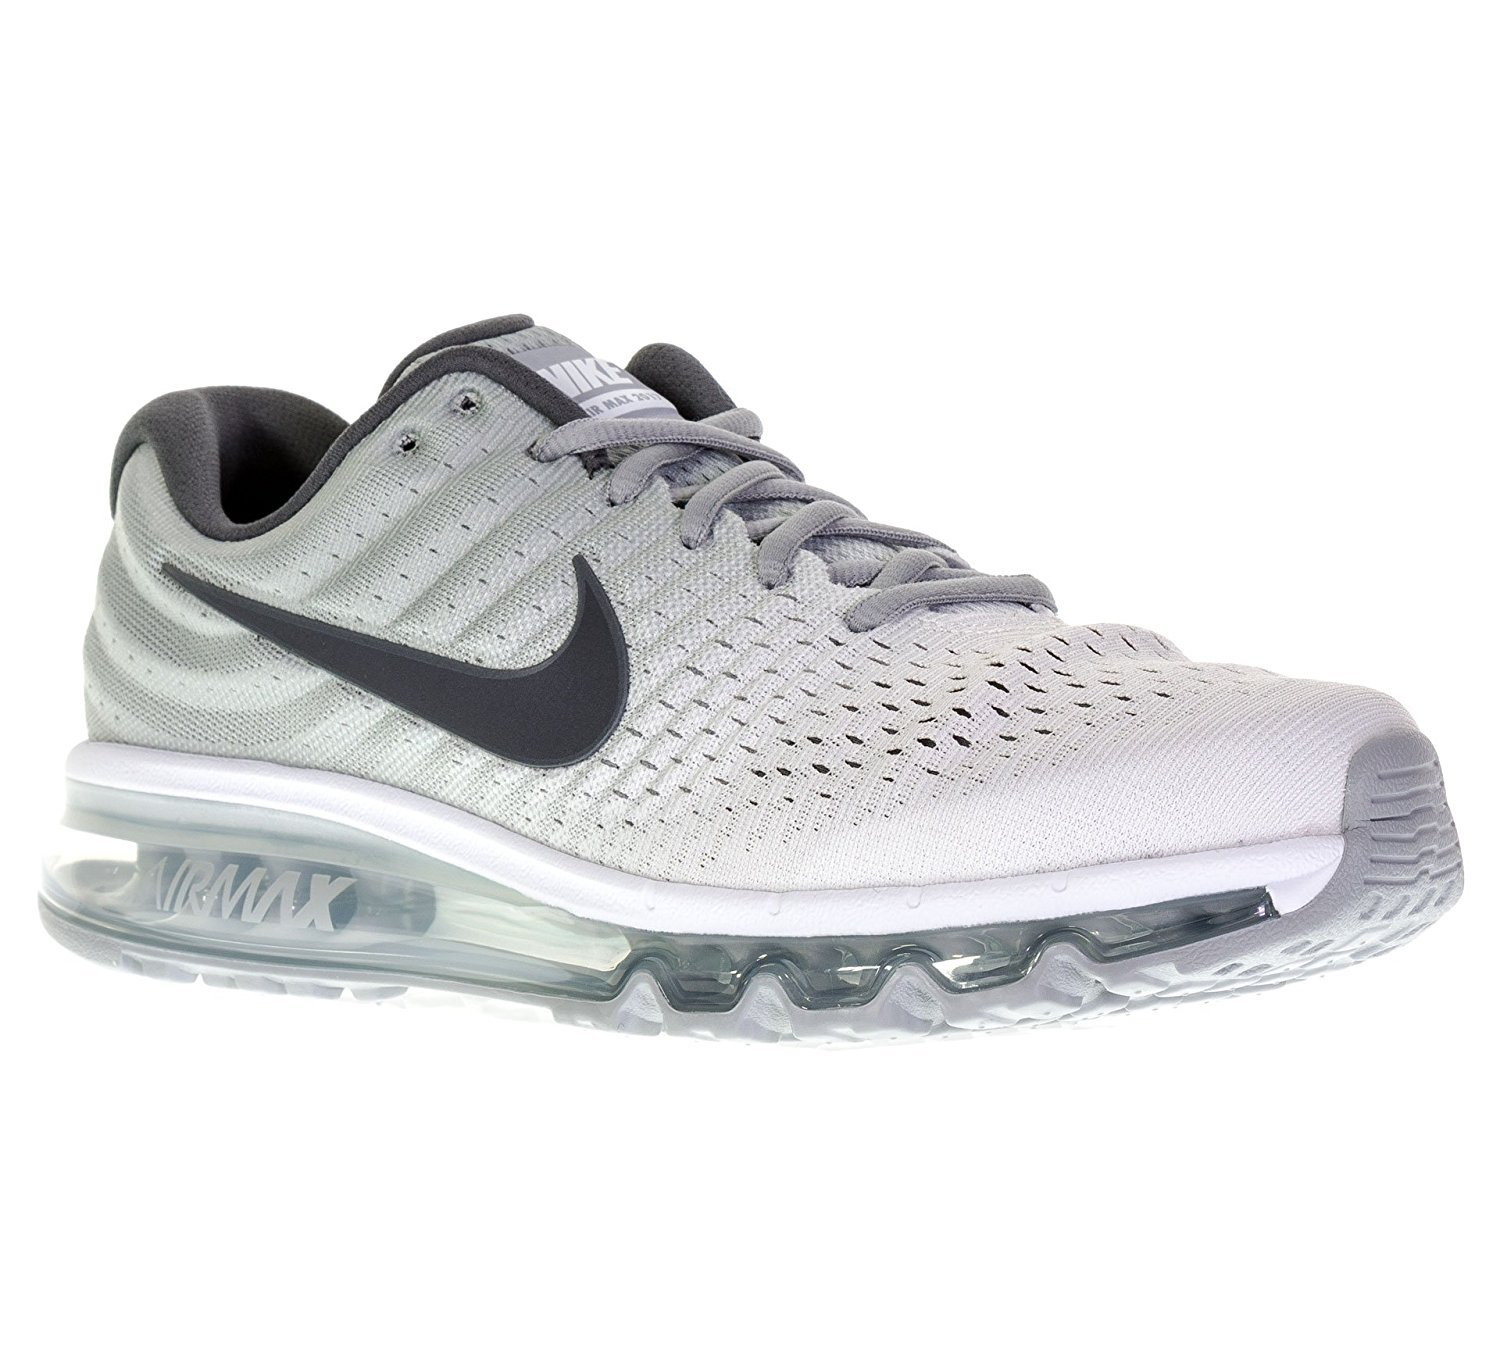 best service b7782 8ab50 Amazon.com: Men's Nike Air Max 2017 Running Shoe: Sports & Outdoors